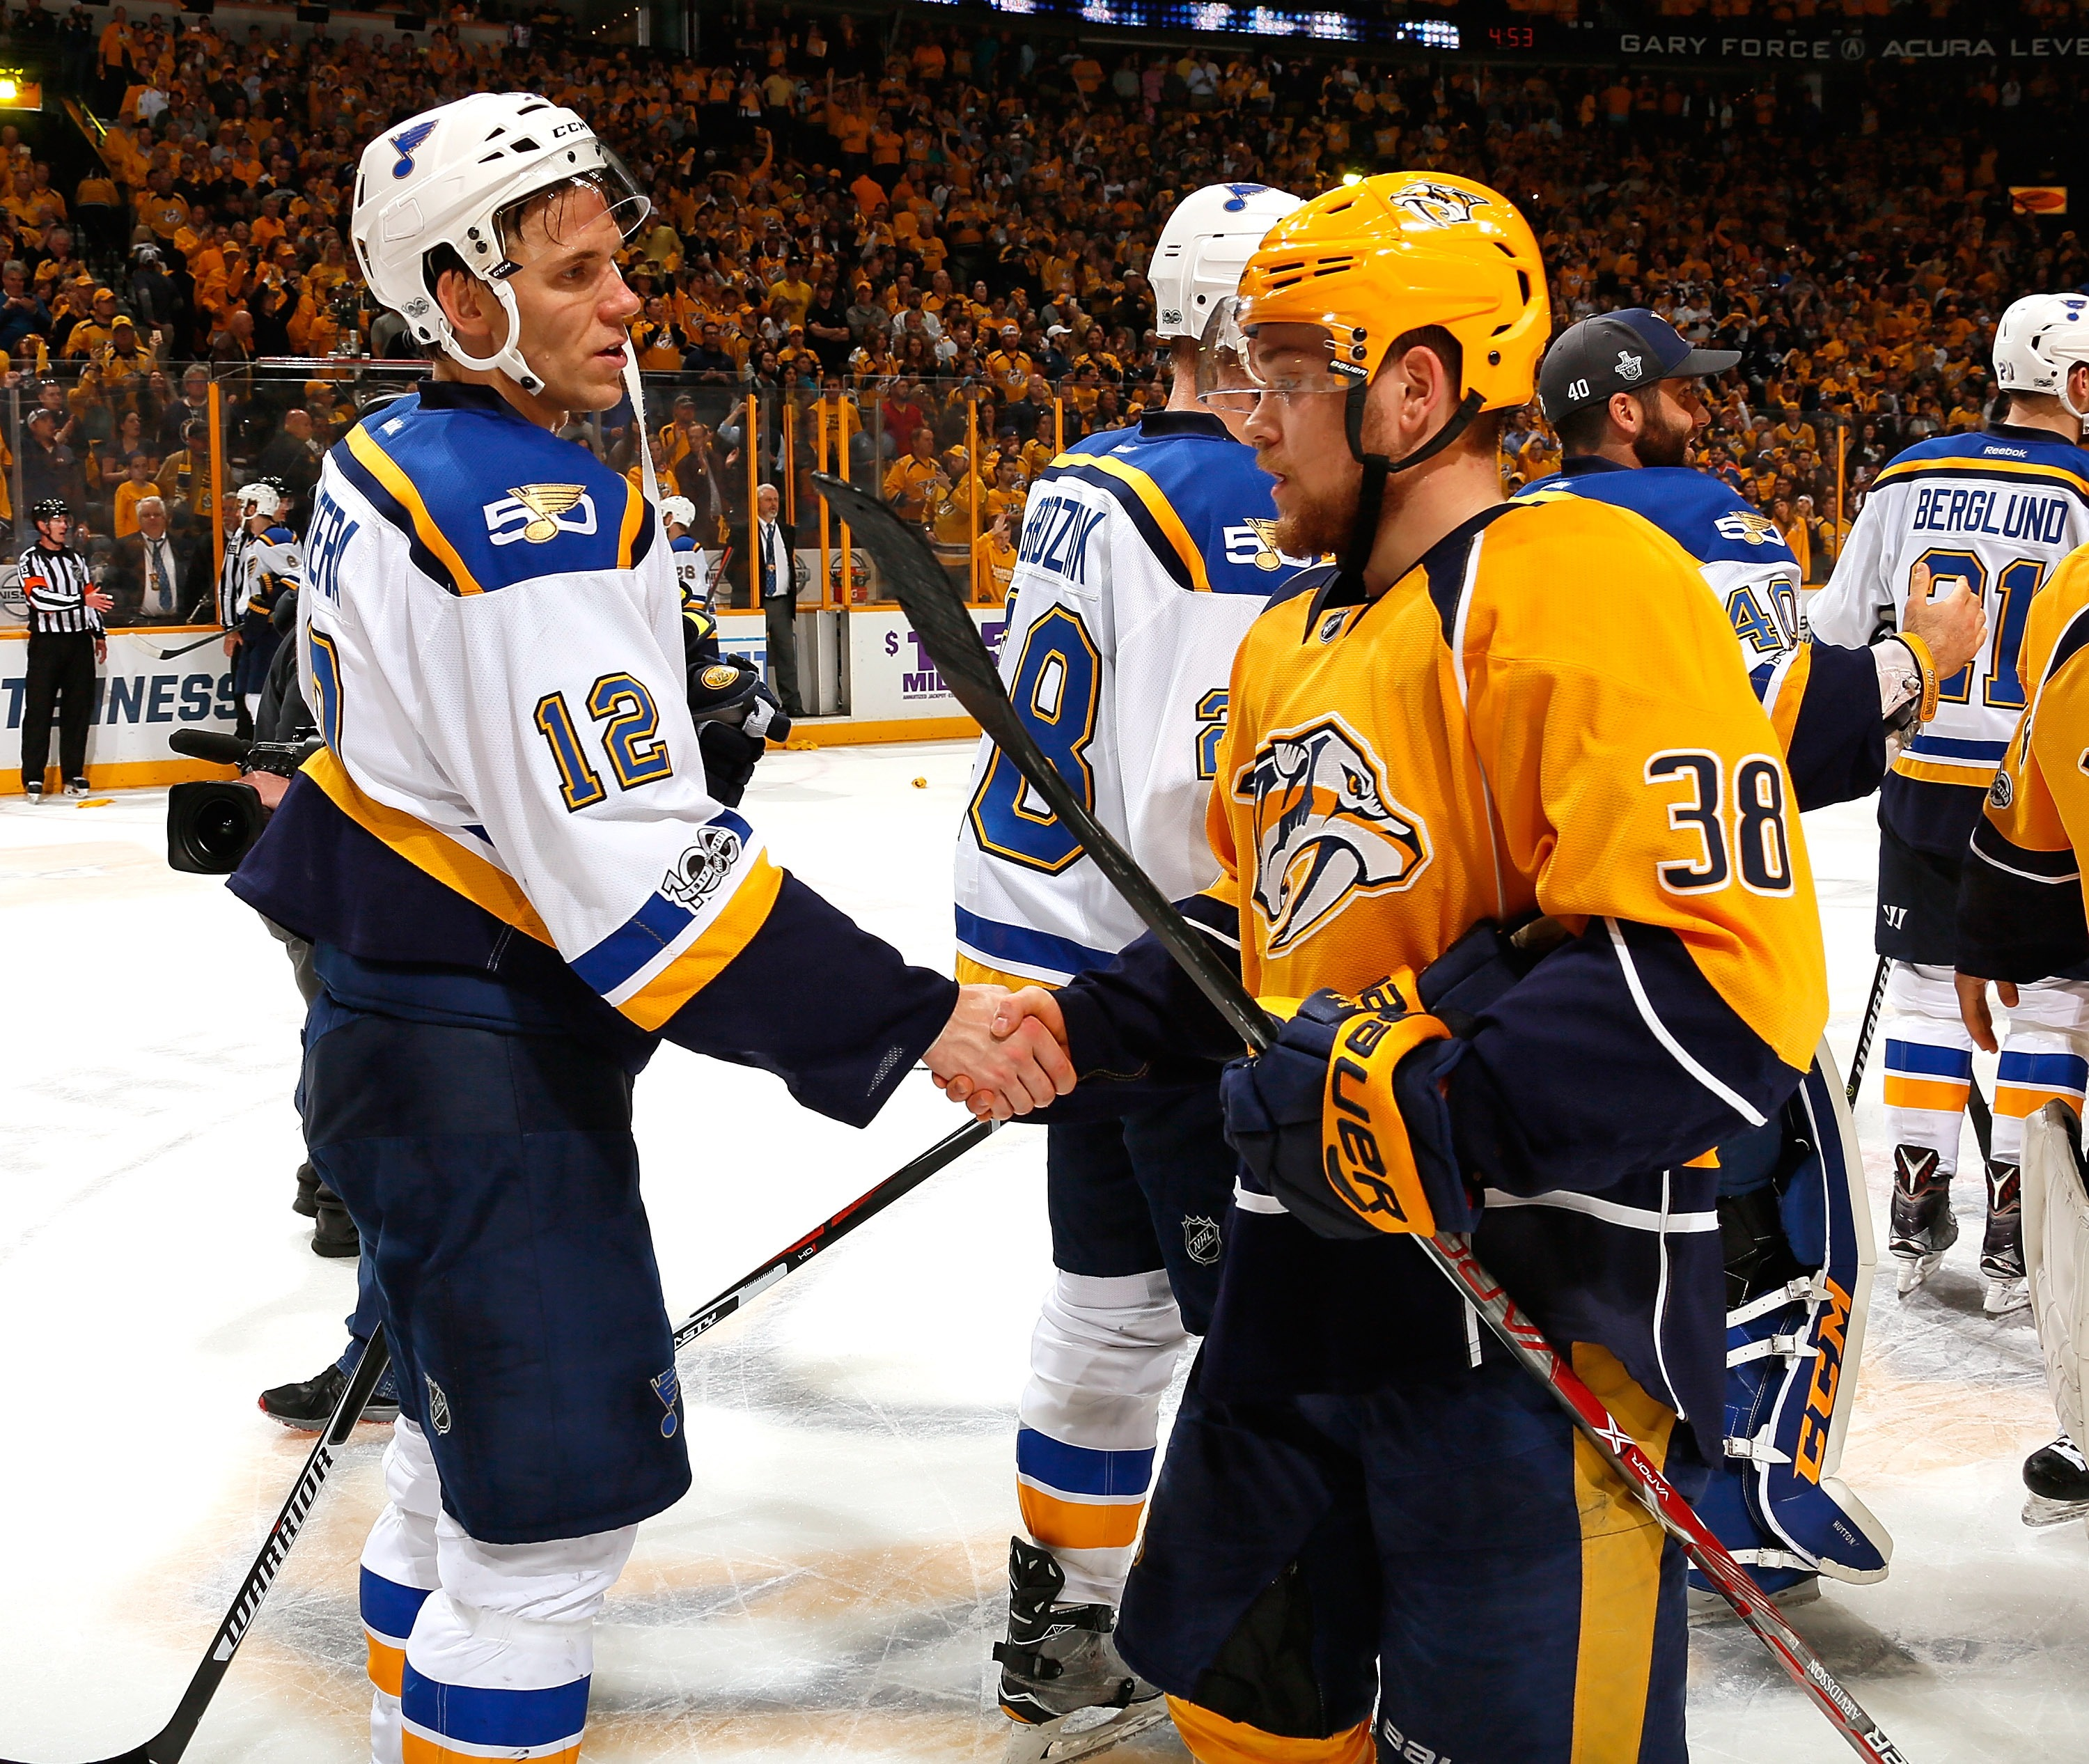 680095700-st-louis-blues-v-nashville-predators-game-six.jpg